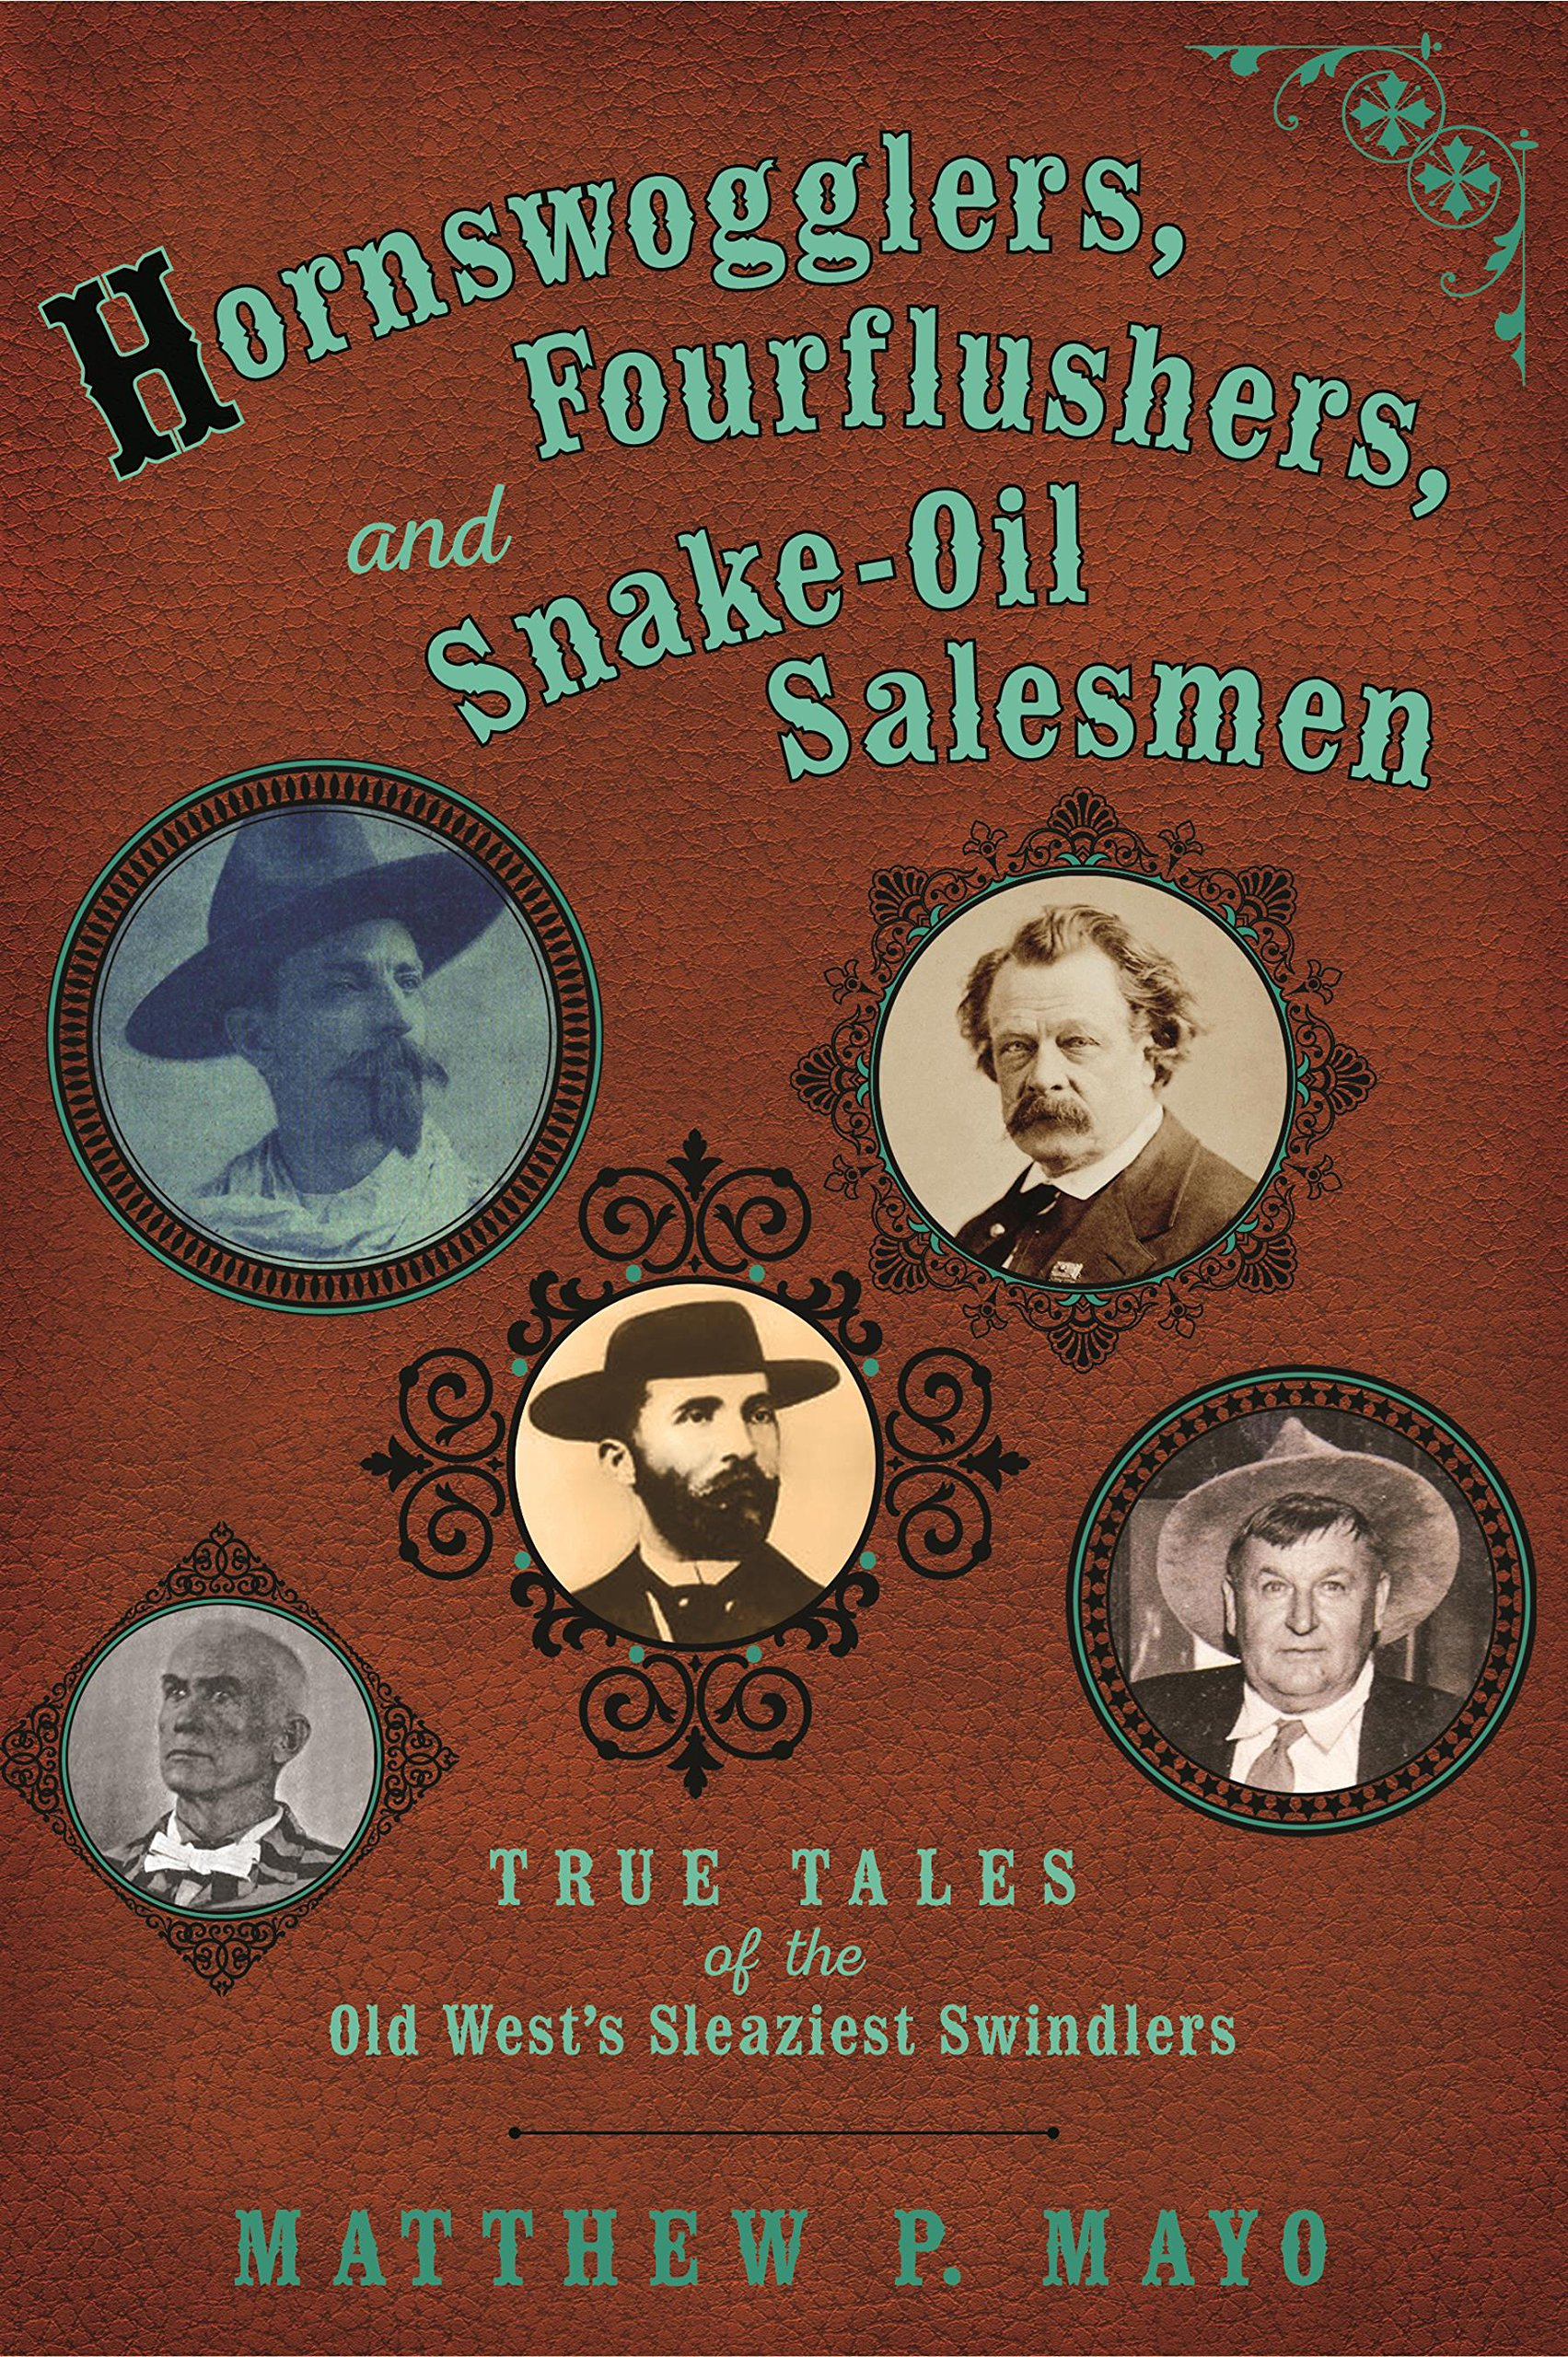 Hornswogglers, Fourflushers, and Snake-Oil Salesmen